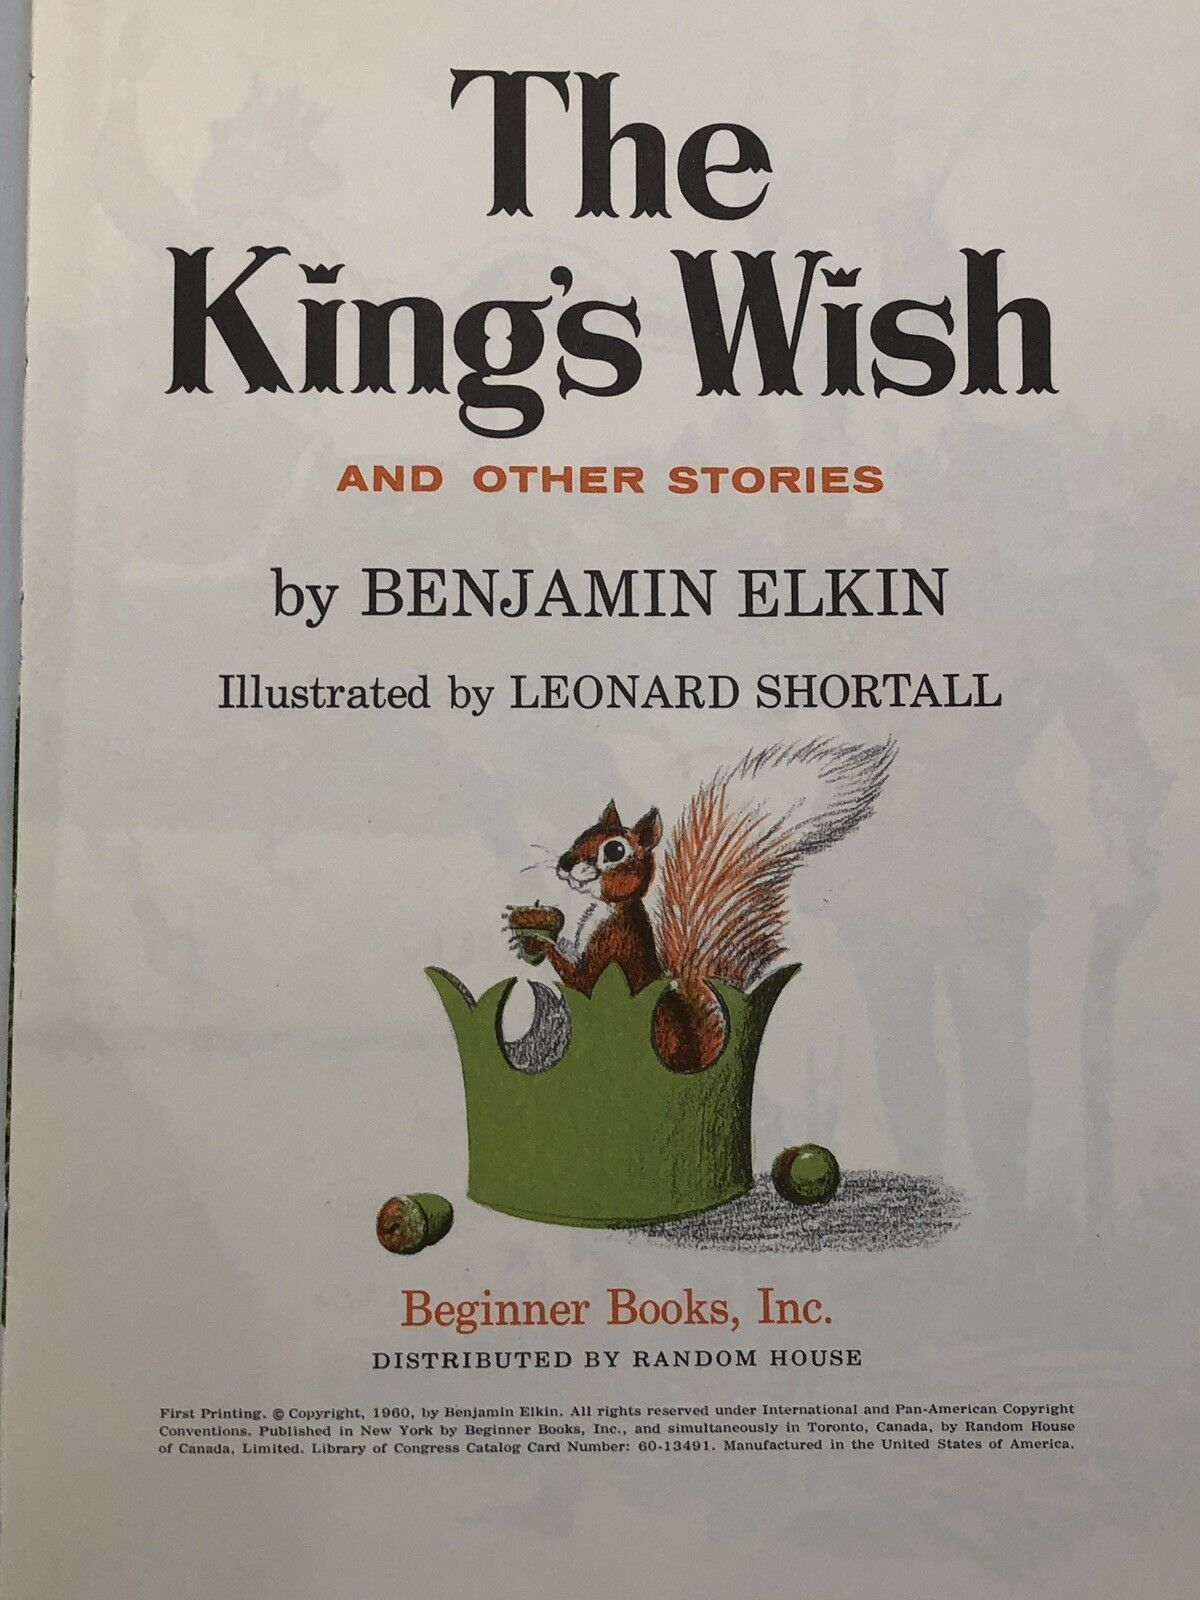 The King's Wish Benjamin Elkin 1960 Beginner Books with DJ Dust Jacket 195/195